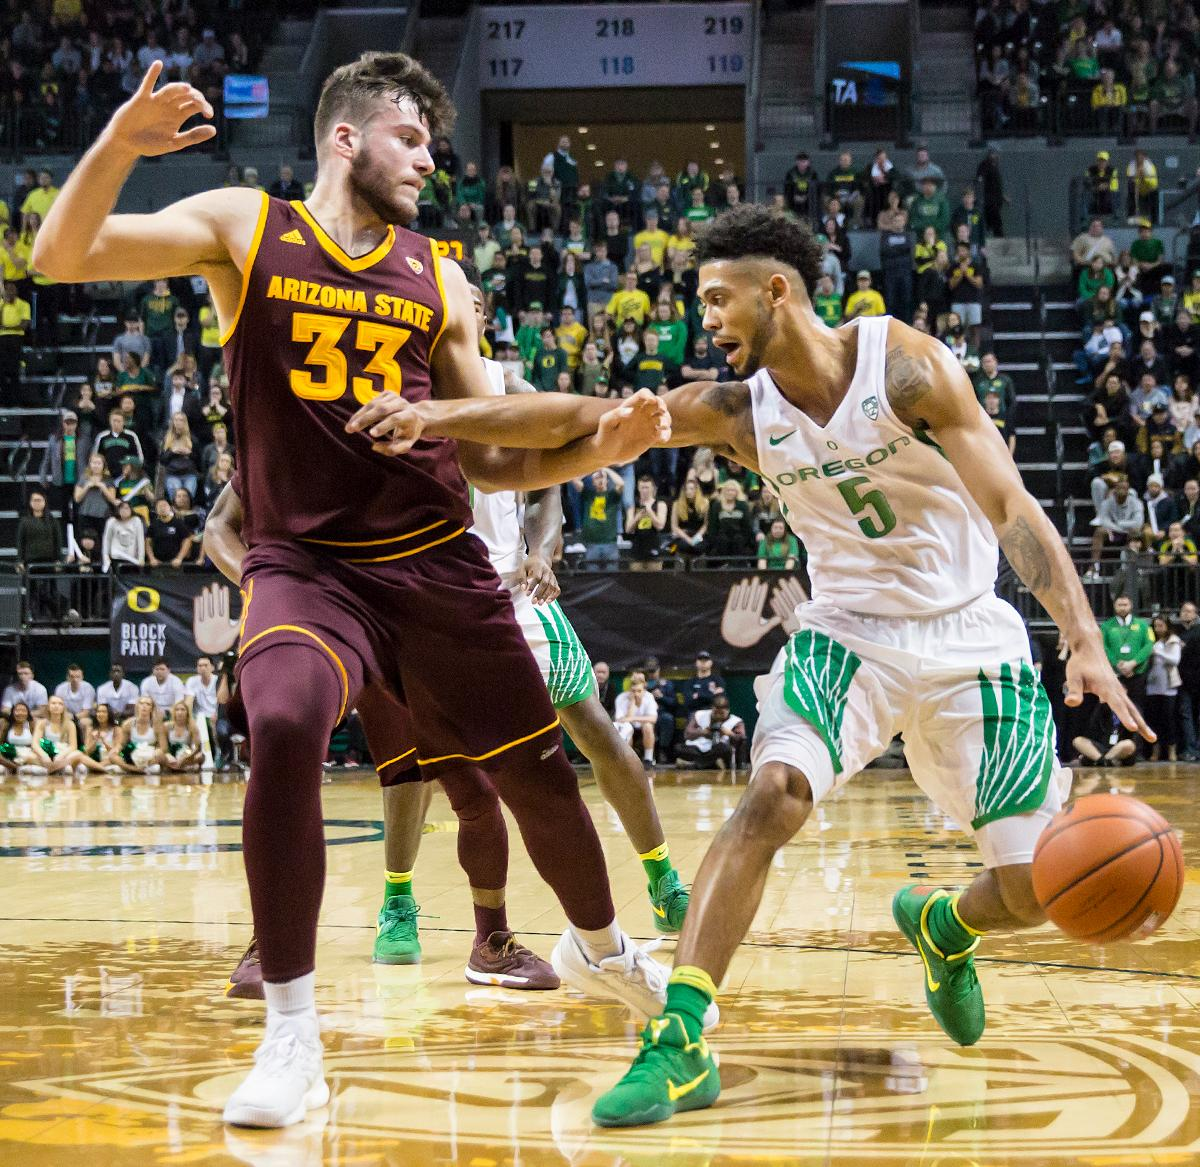 Oregon guard Tyler Dorsey (#5) pushes away from Arizona State forward Roman Vila (#33) to make a shot. The Oregon Ducks defeated the Arizona State Sun Devils 71 to 70. Photo by Ben Lonergan, Oregon News Lab